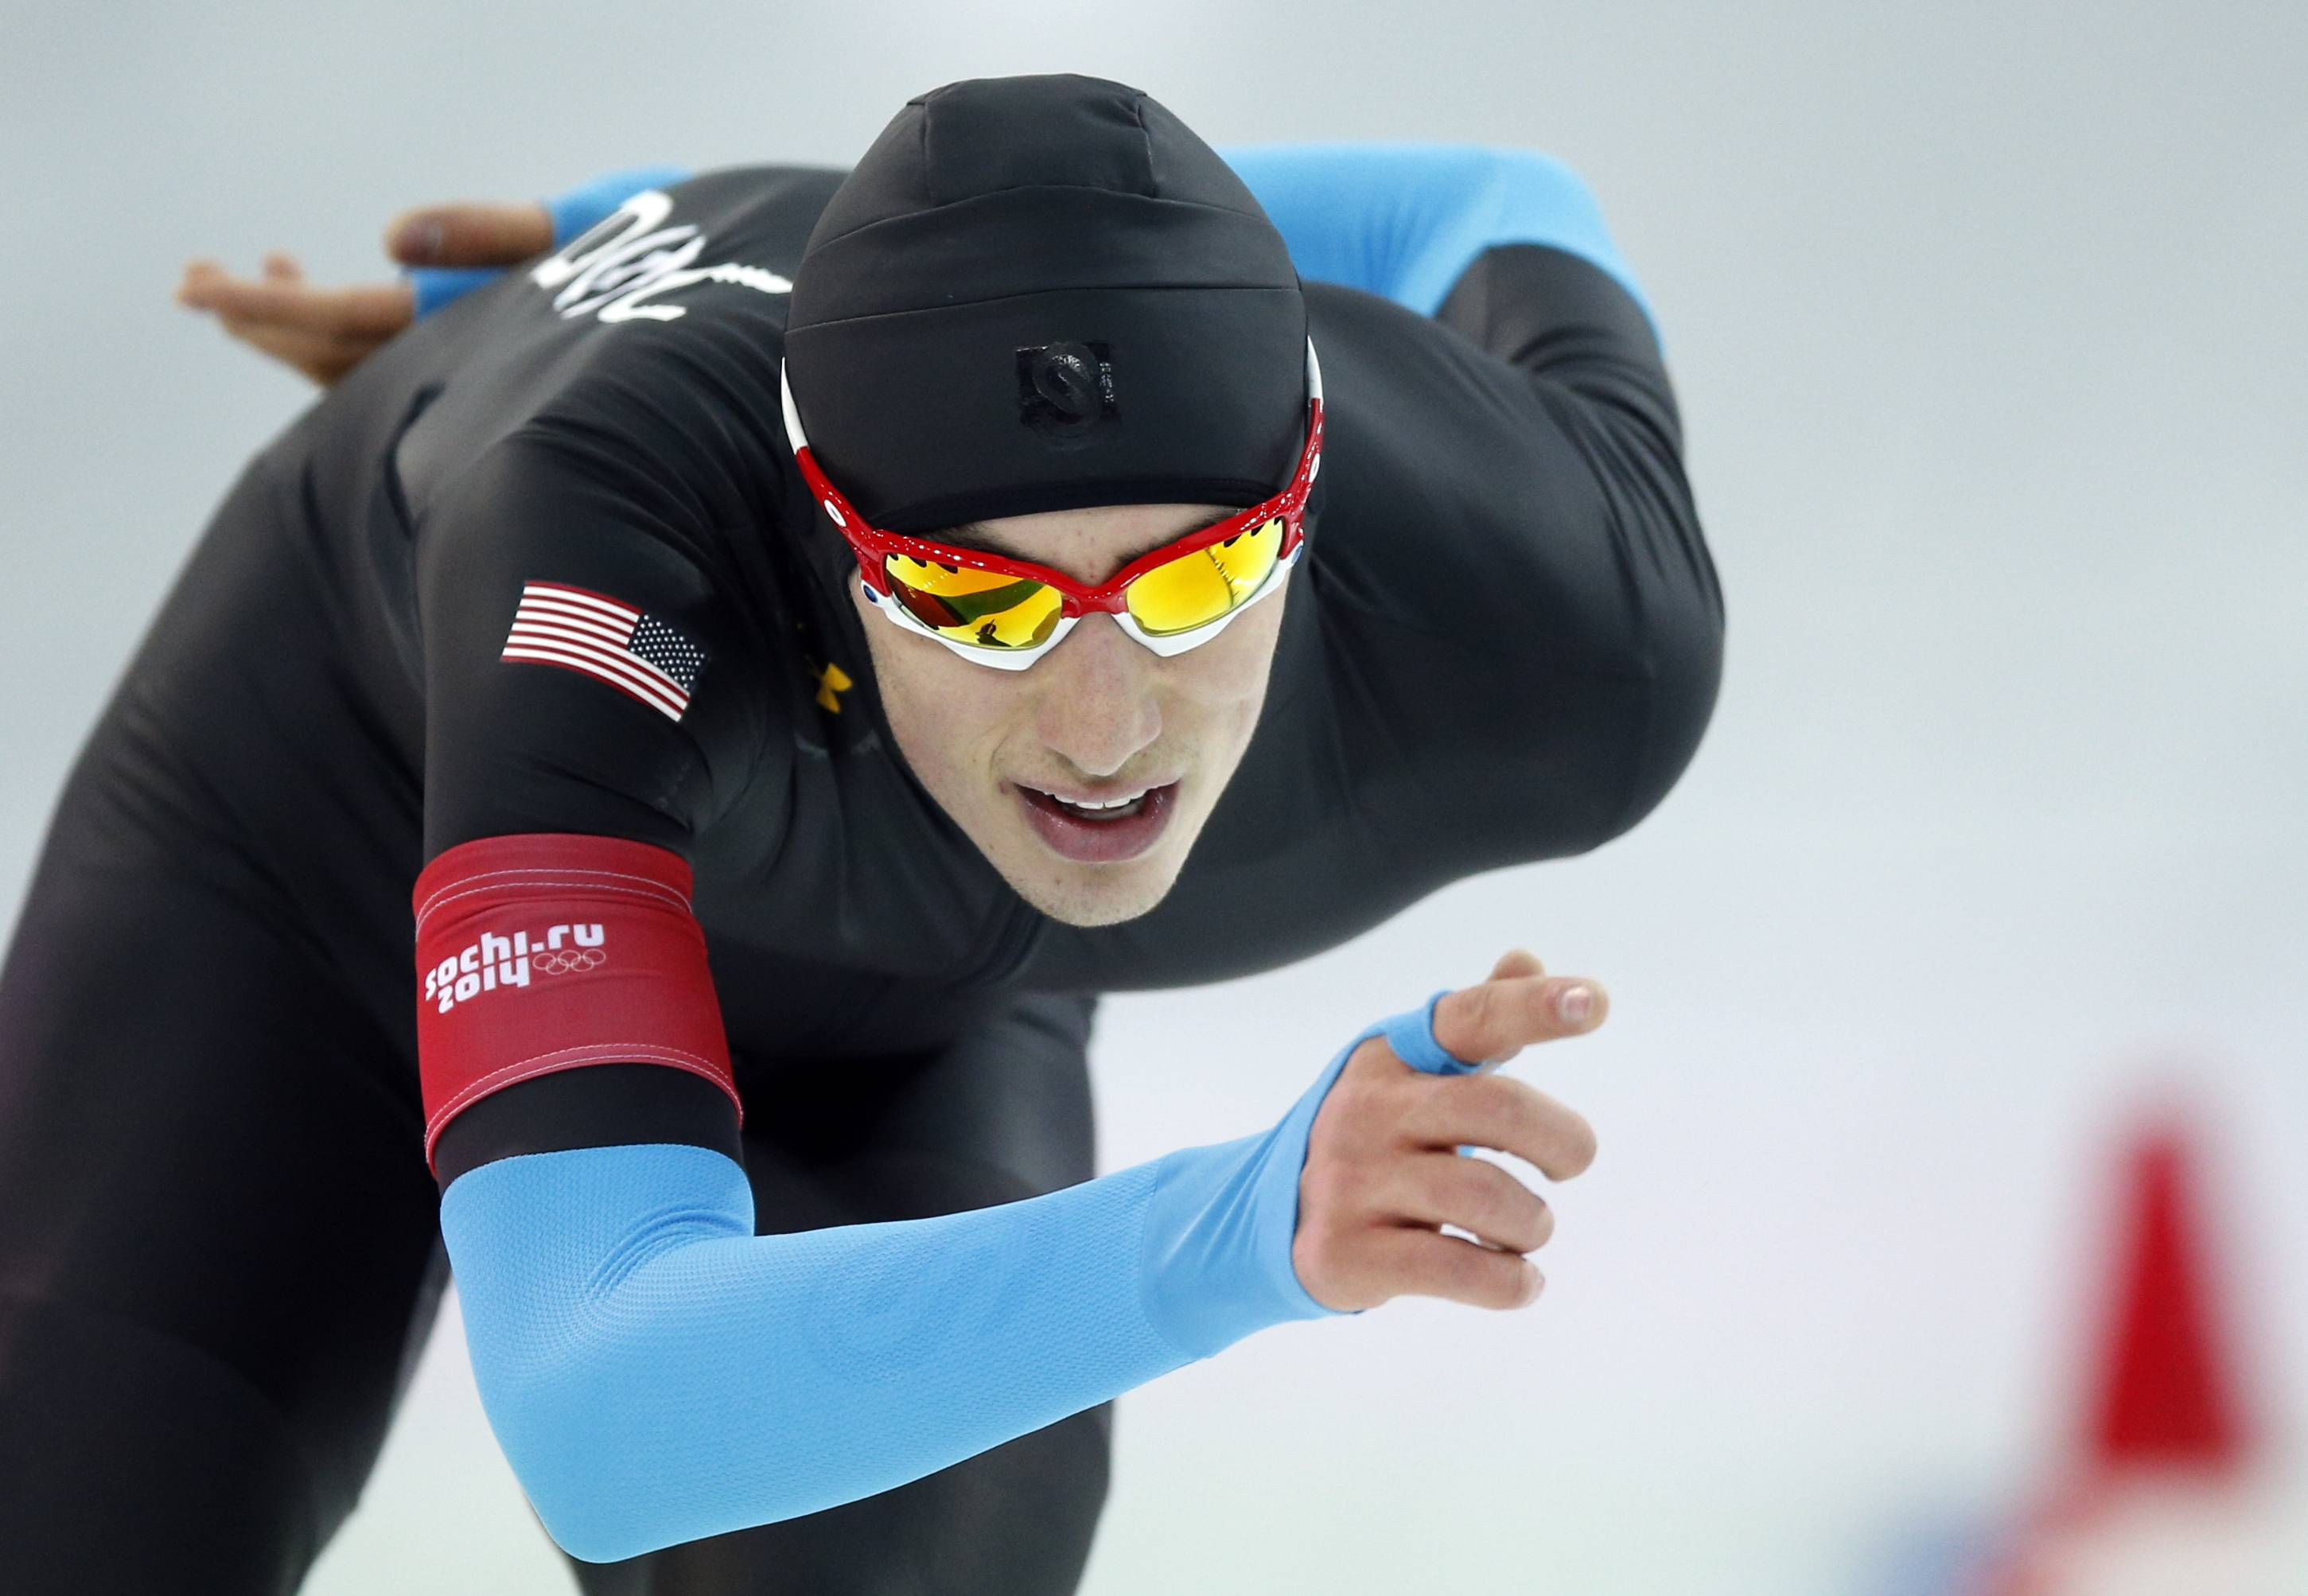 Oak Park's Emery Lehman of the U.S. competes in the men's 10,000-meter speedskating race at the Adler Arena Skating Center during the 2014 Winter Olympics in Sochi, Russia, Tuesday, Feb. 18, 2014.